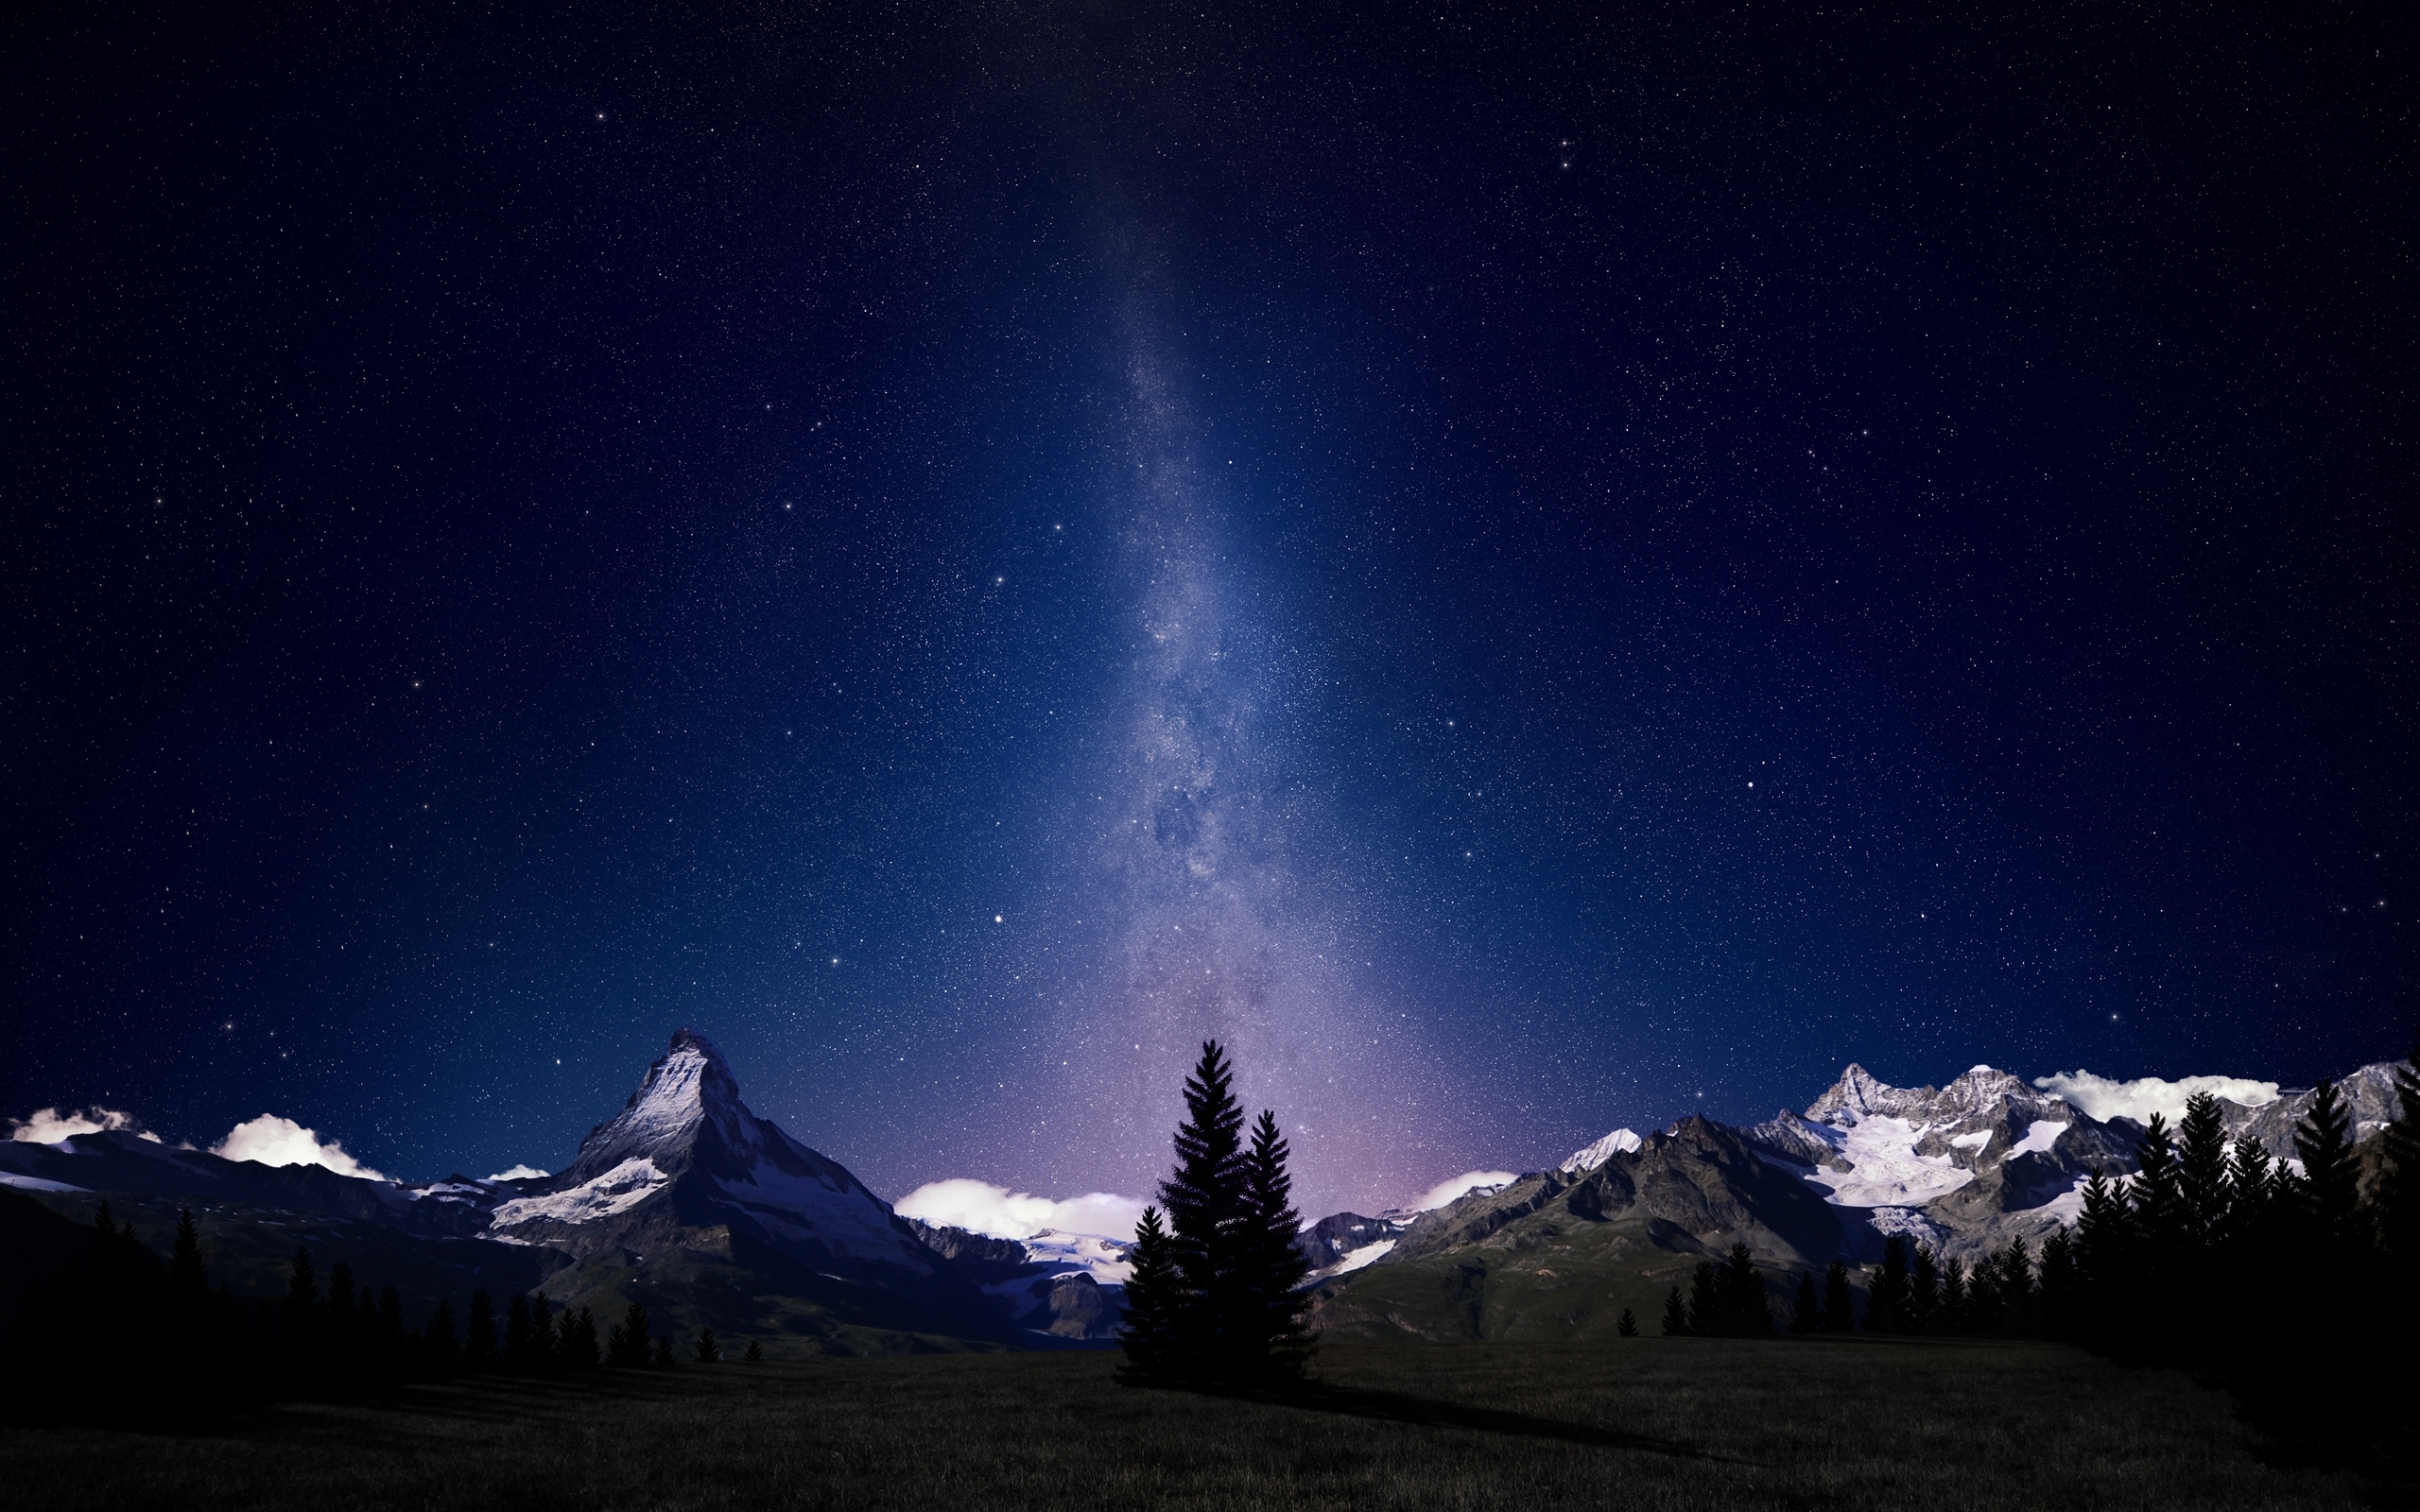 10 Latest Night Sky Photography Wallpaper FULL HD 1080p For PC Background